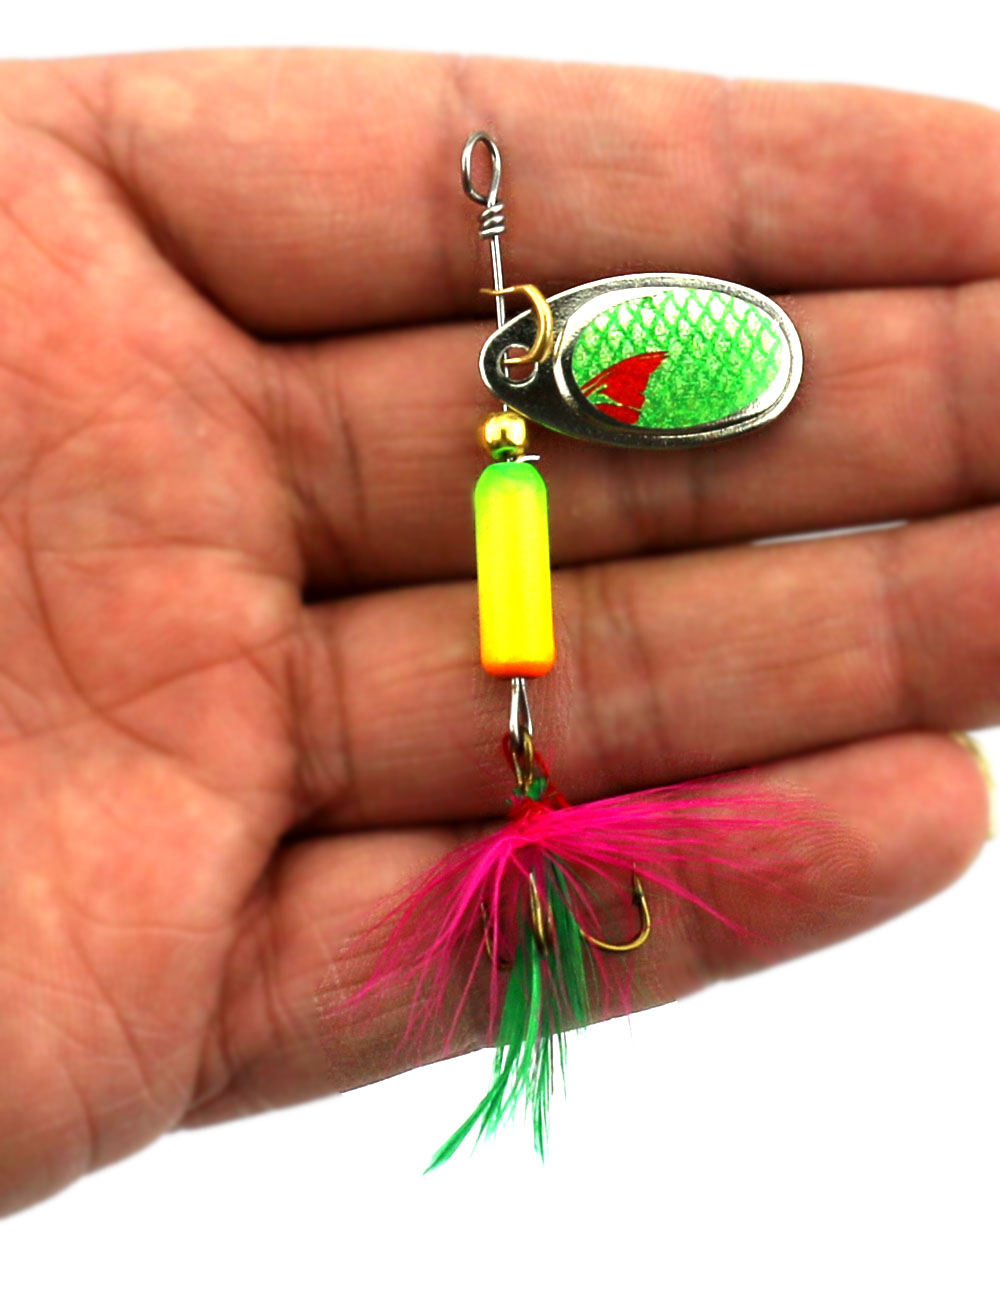 50pcs Fishing Lure Metal Spoon Spinnerbait With Feather Hook 6.3CM-3.5G